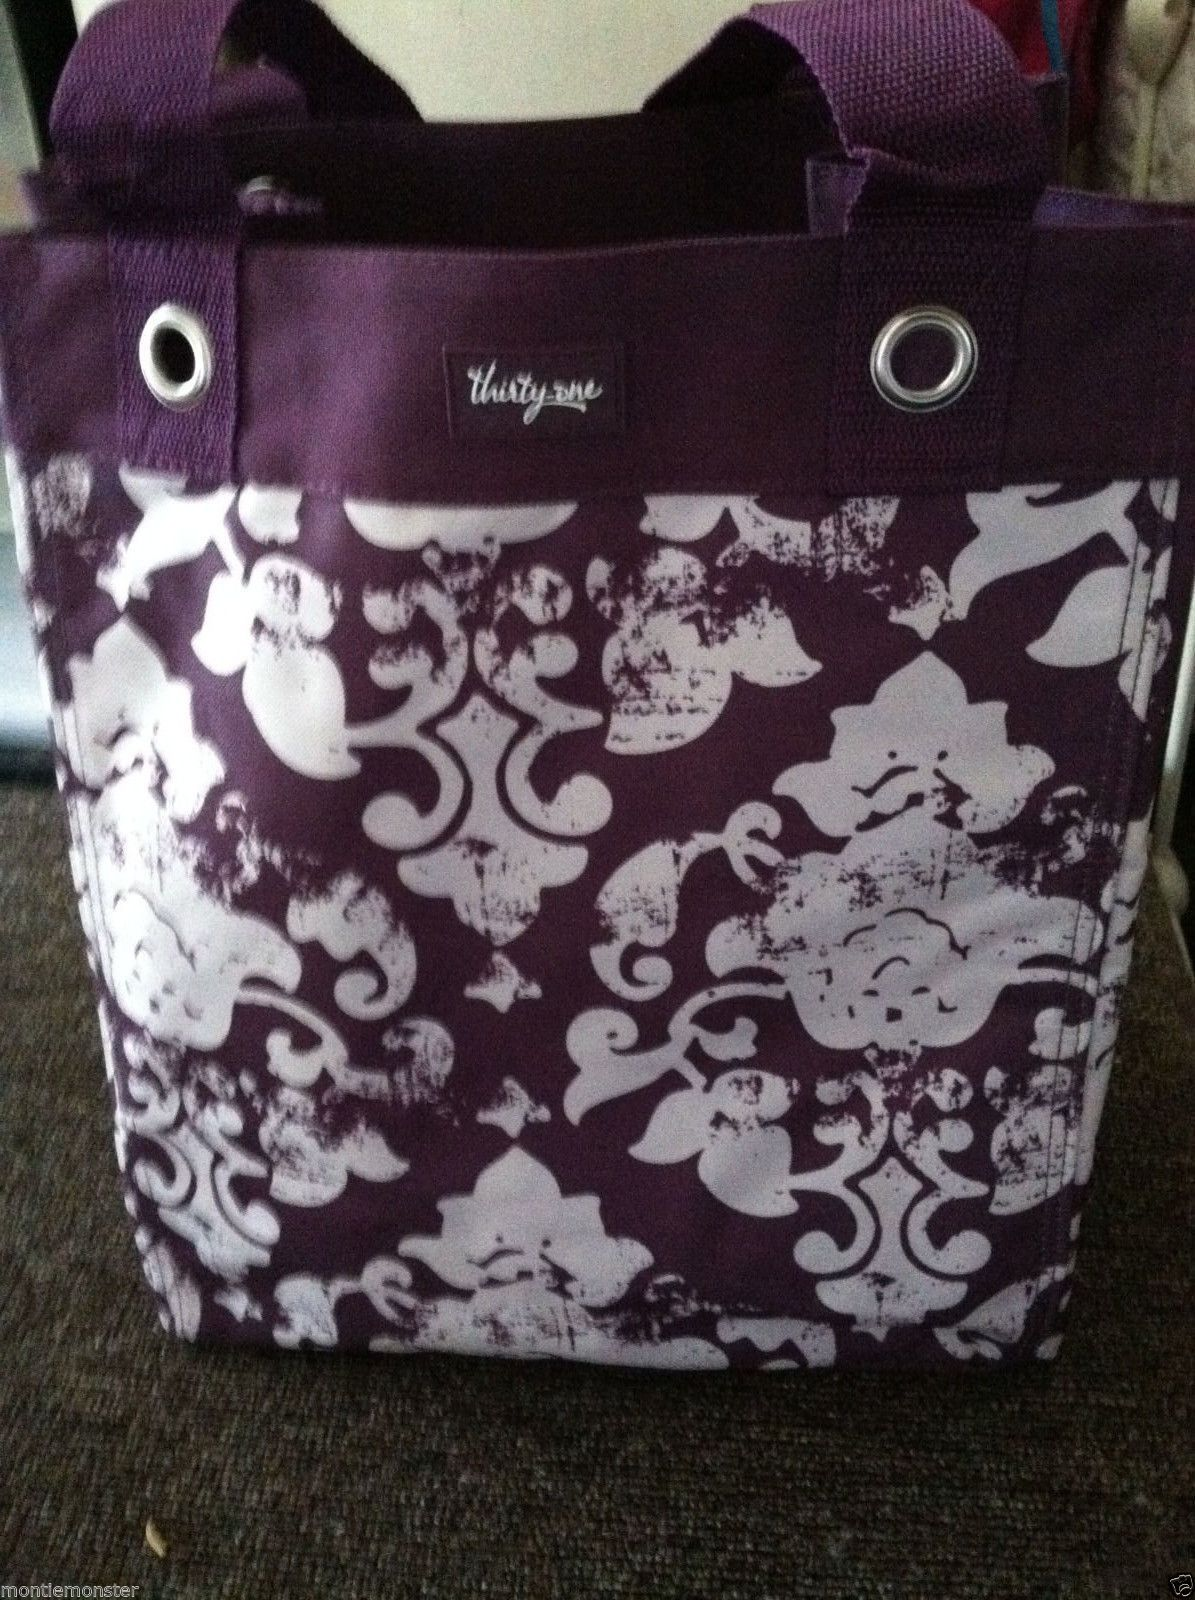 Thirty One Gifts 31 Essential Storage Tote Bag Vintage Damask New Fast Free Ship Ebay